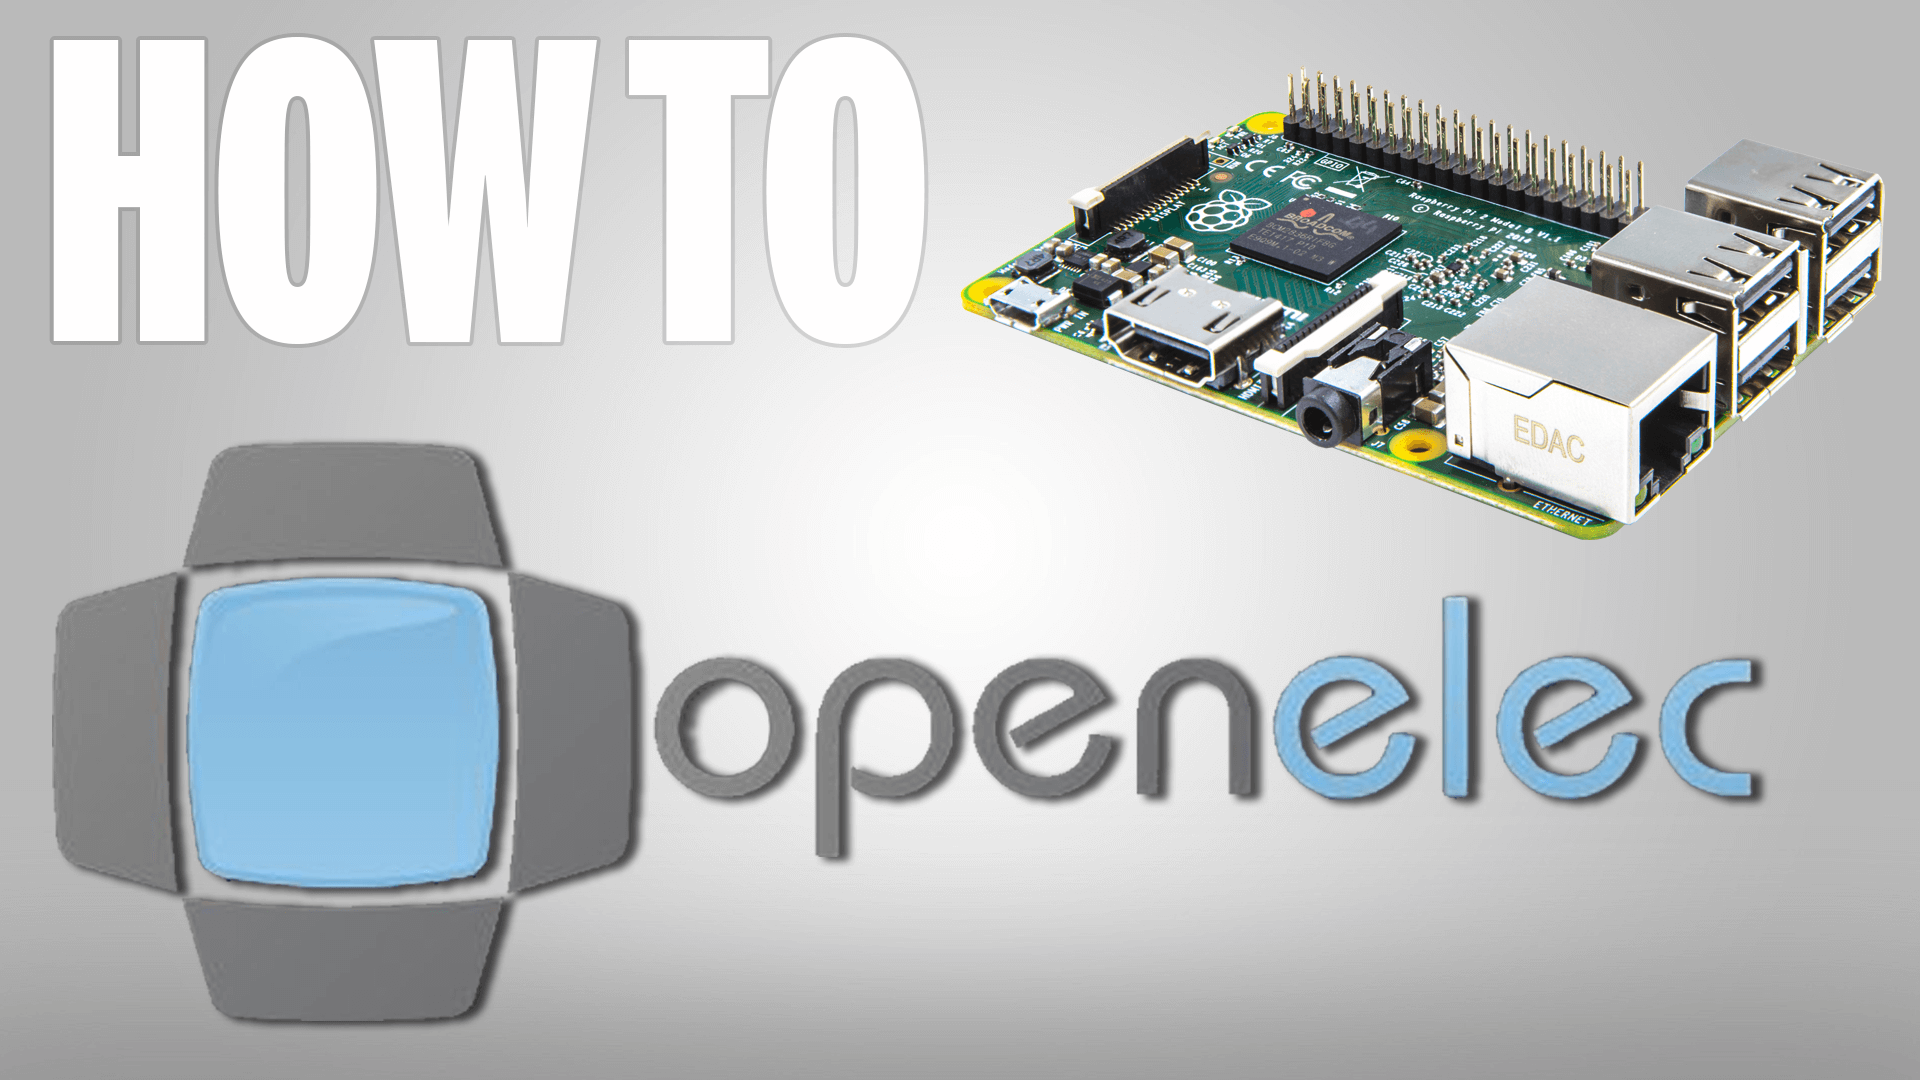 How to Install Kodi OpenElec on a Raspberry Pi 3, 2, 1, B+ or 0